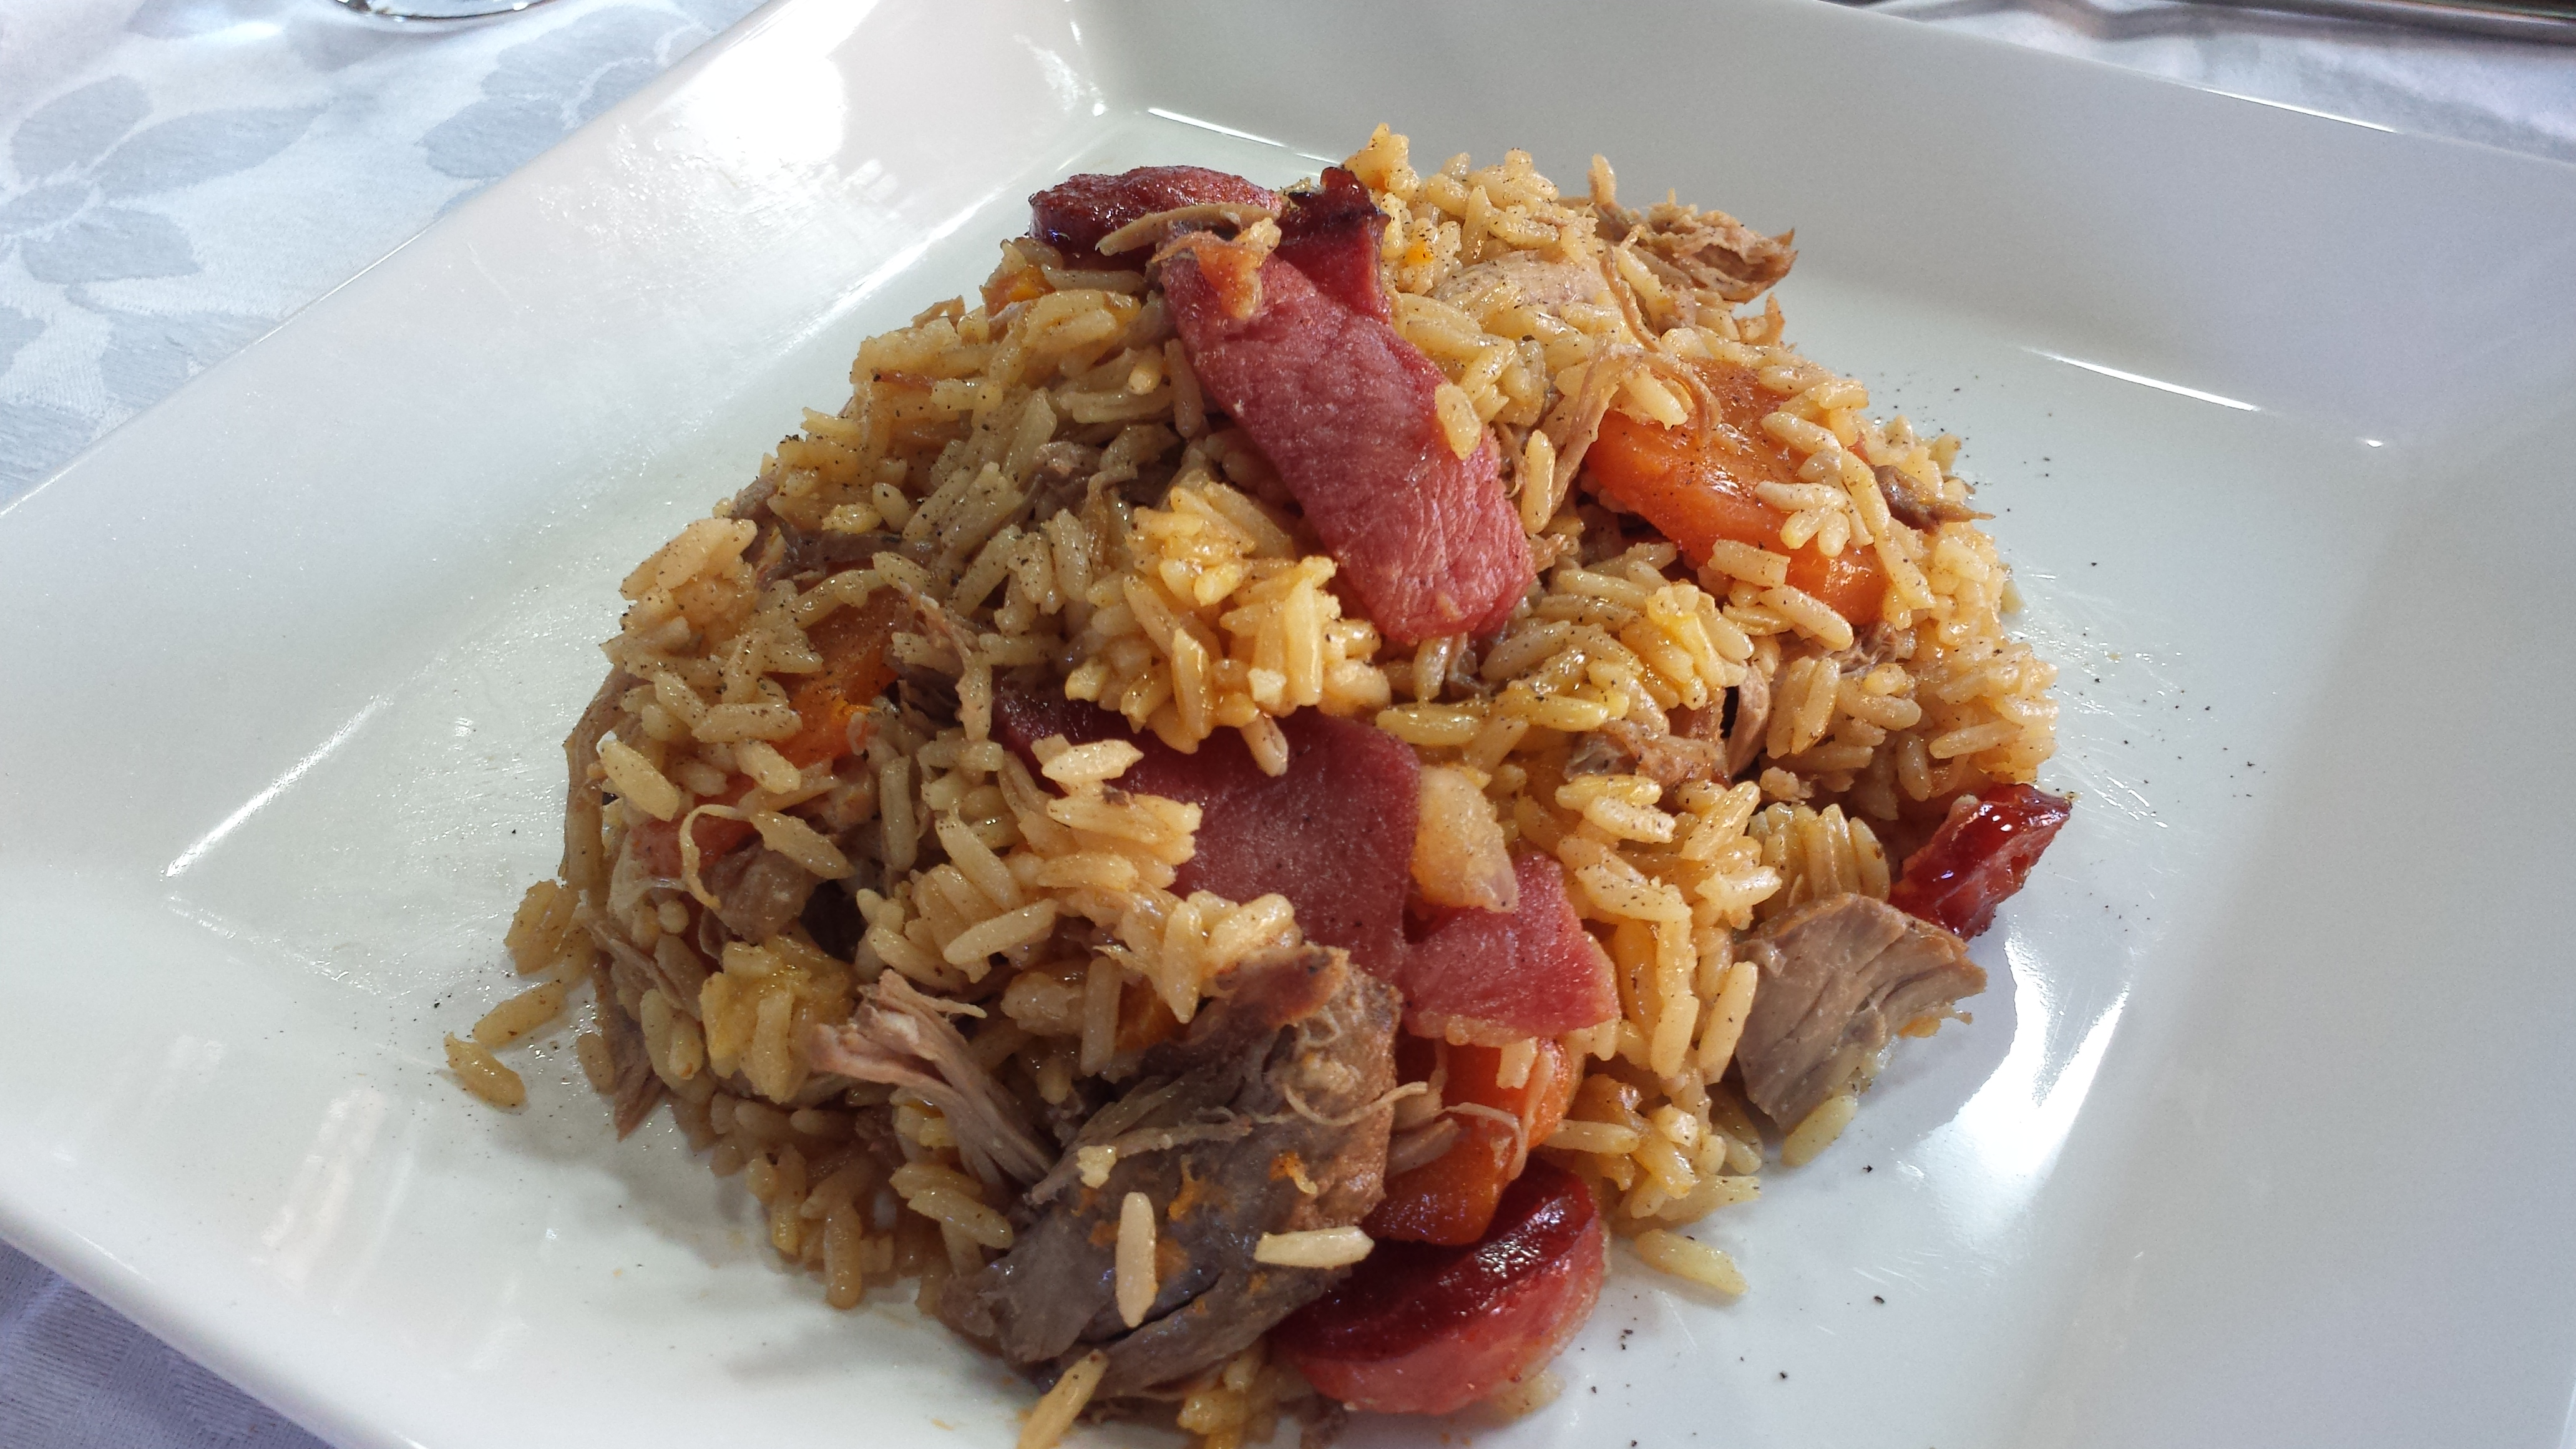 go costa with Arroz De Pato on Kingdice Provably Fair Dice Game together with Figueres Travel Guide in addition Flag Of Costa Rica 2034069 also UFC 211 Joanna Jedrzejczyk Vs Jessica Andrade Joe Rogan Preview together with Best Beaches On The Costa De La Luz Spain Los Canos De Meca Barbate.